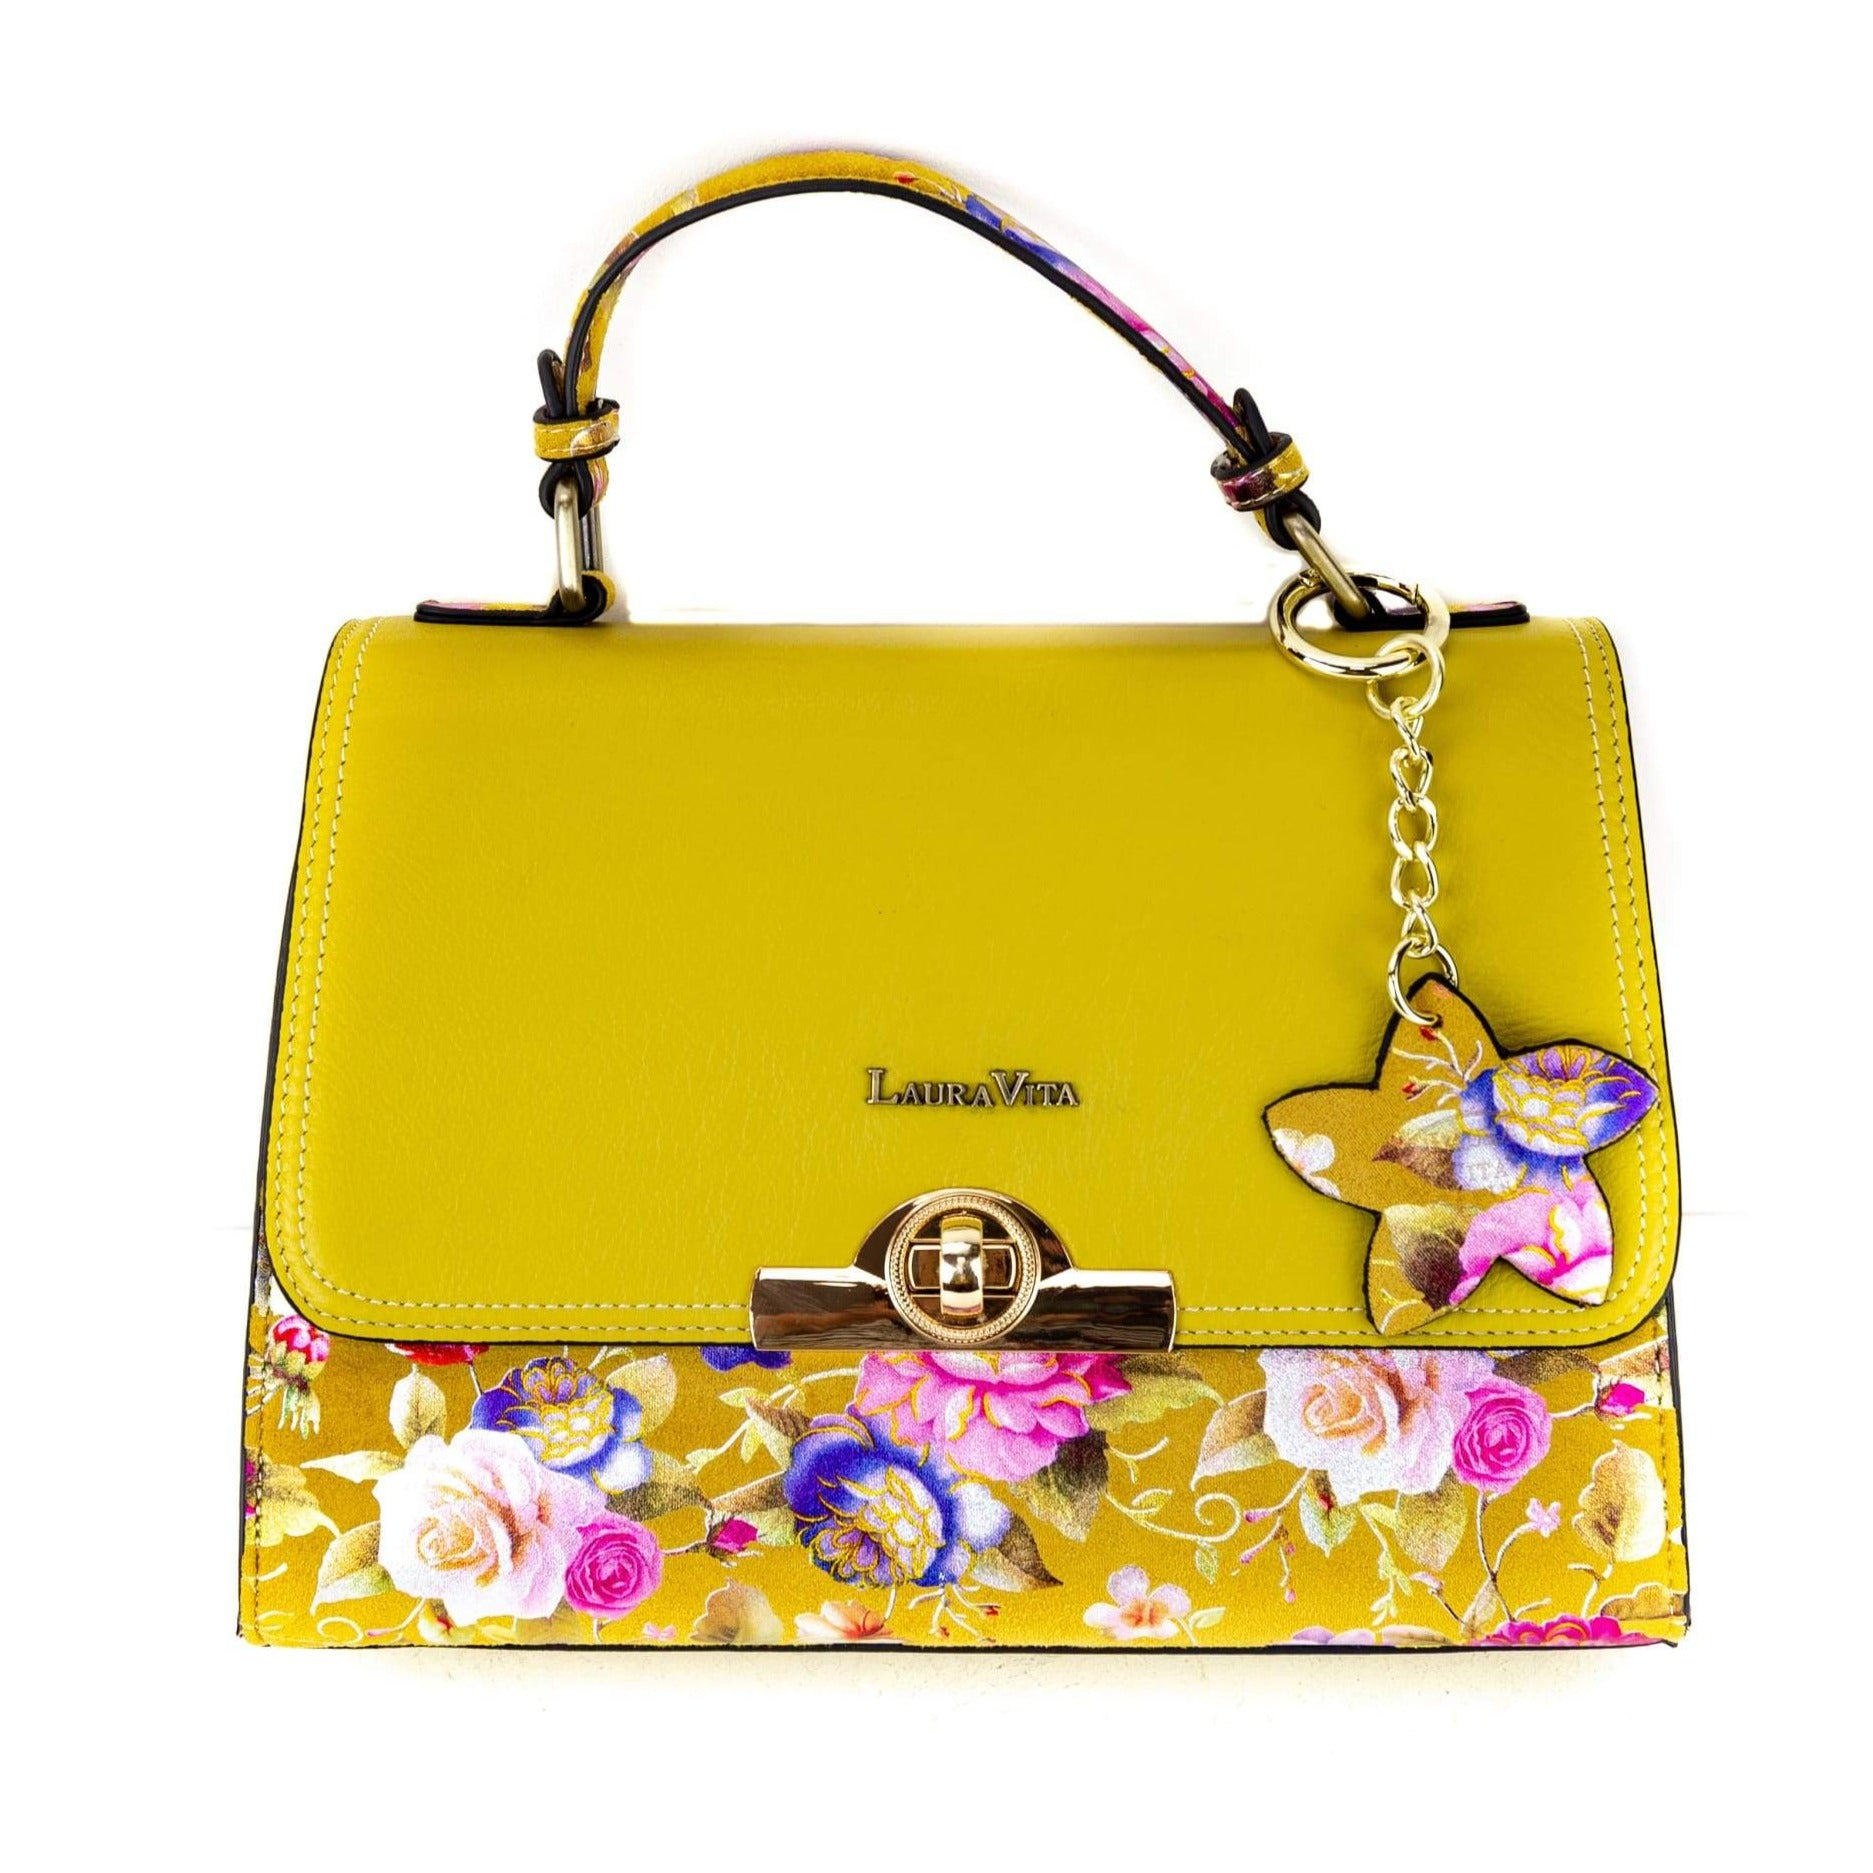 Sac 3510 - TU / YELLOW - Sac